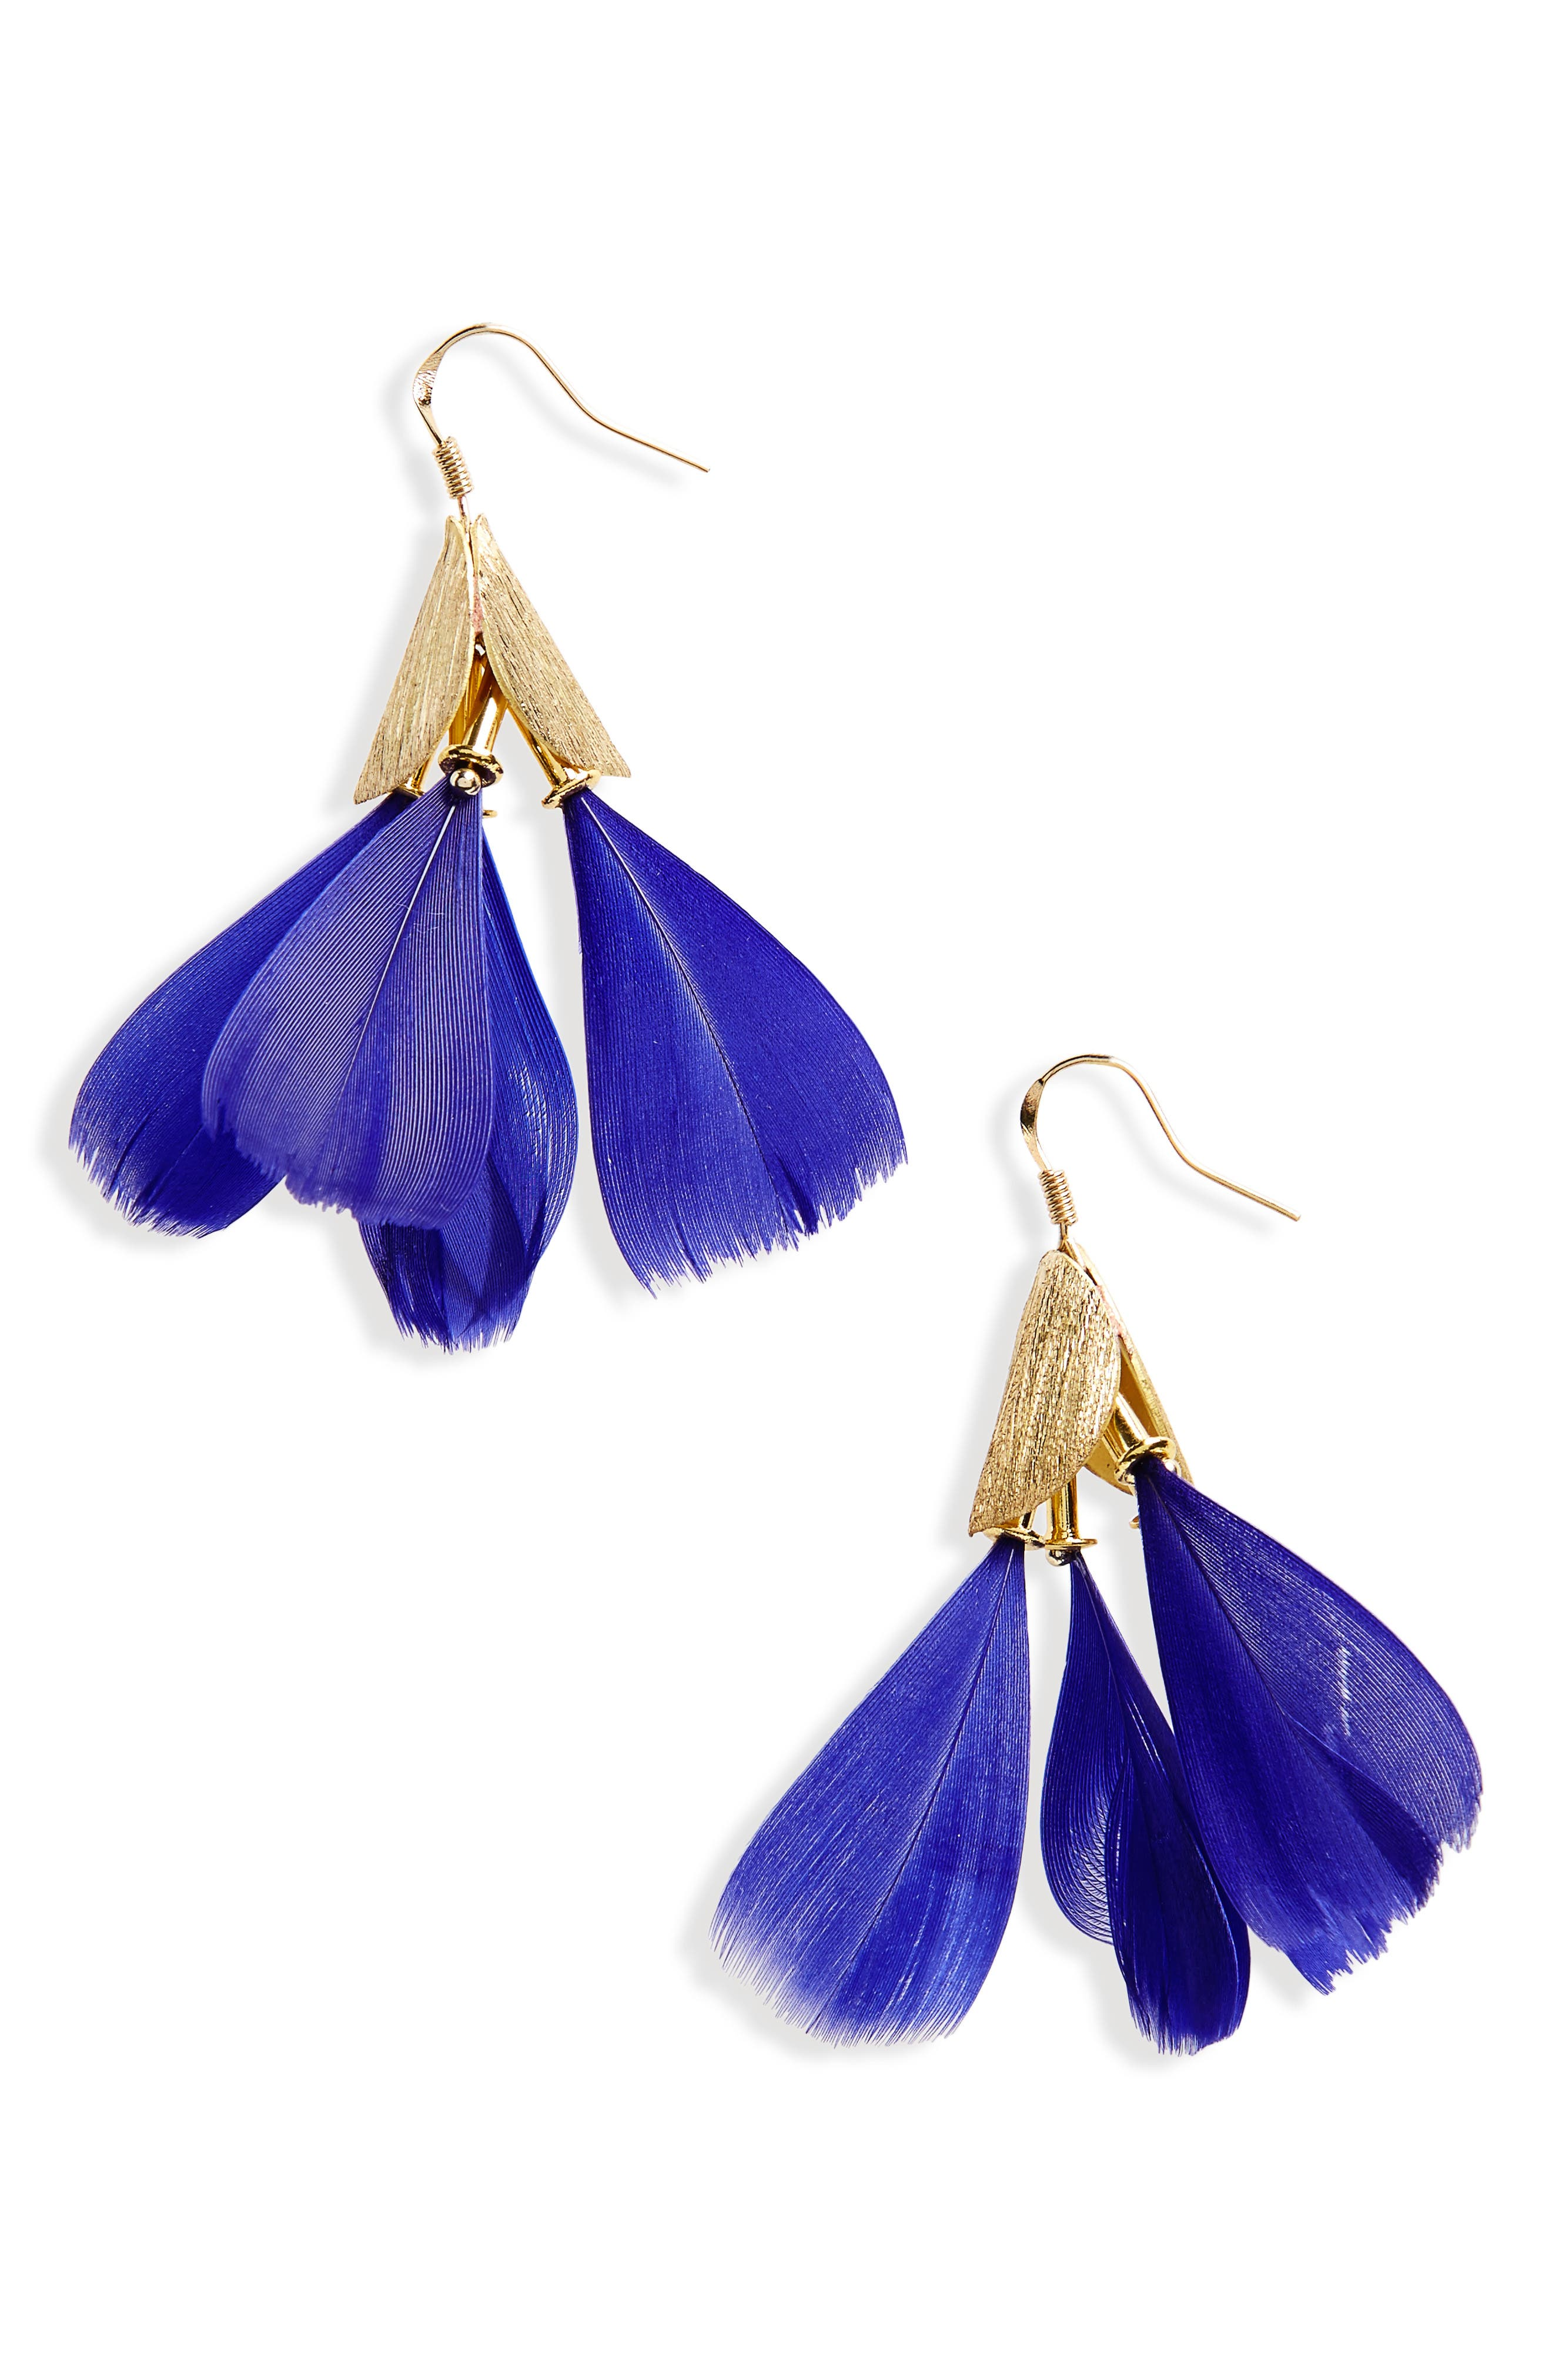 Dancing Feather Earrings,                             Main thumbnail 1, color,                             Blue